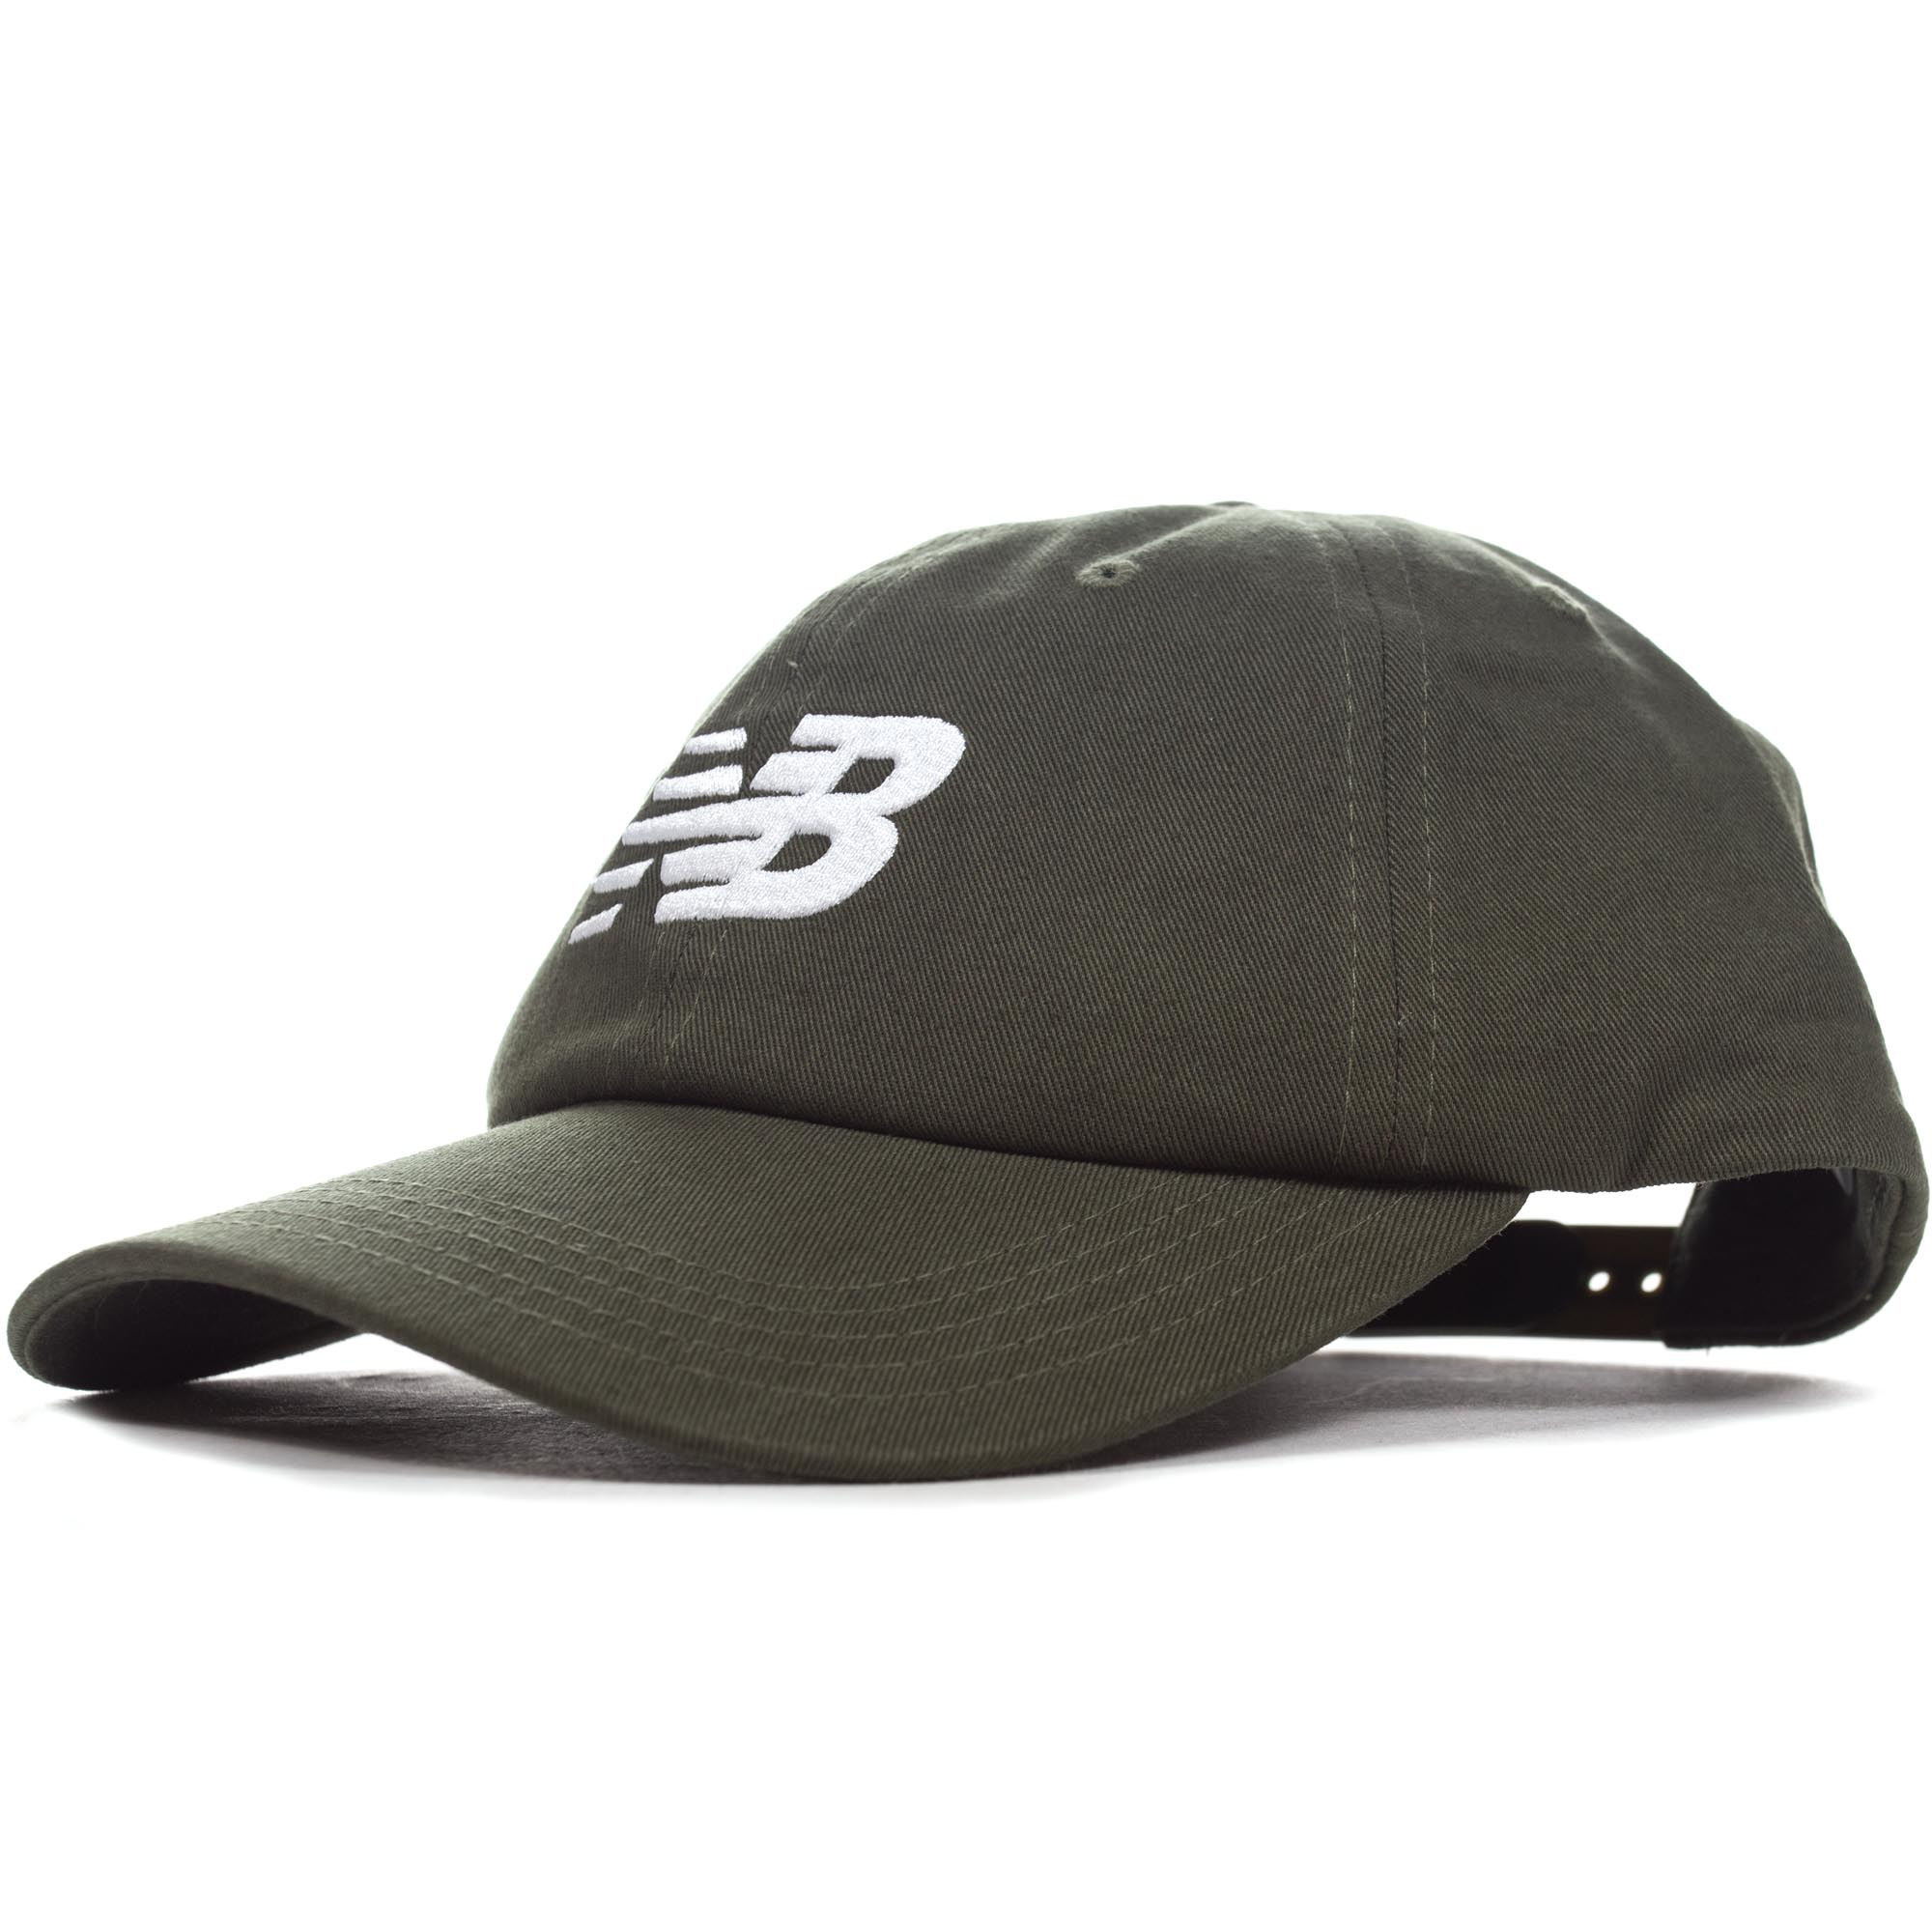 45254ccef99af8 Details about New Balance Mens 6-Panel Curved Brim Snapback Baseball Cap Hat